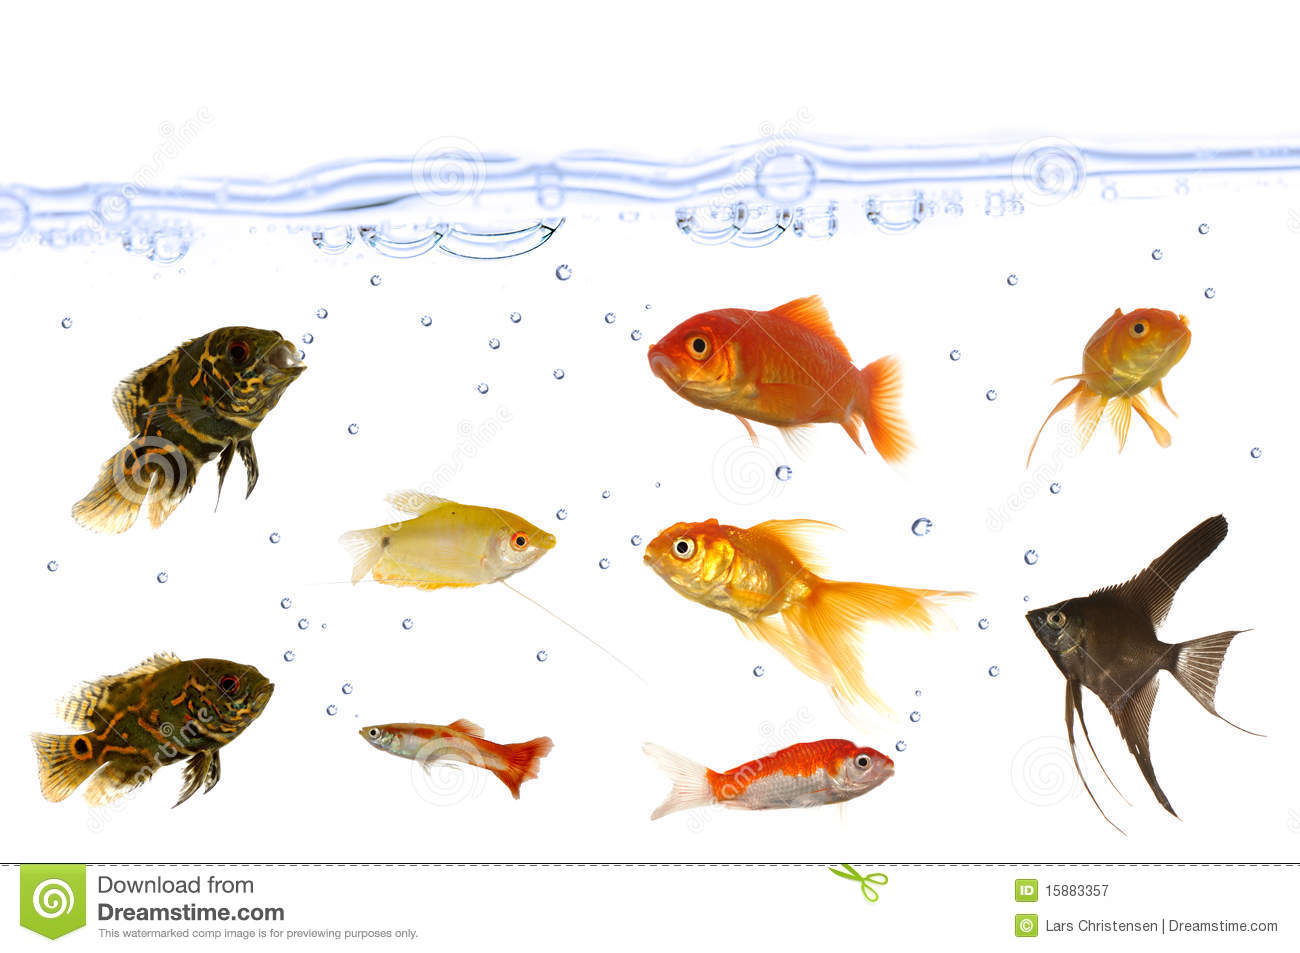 Many aquarium fish royalty free stock photography image for Can fish see water